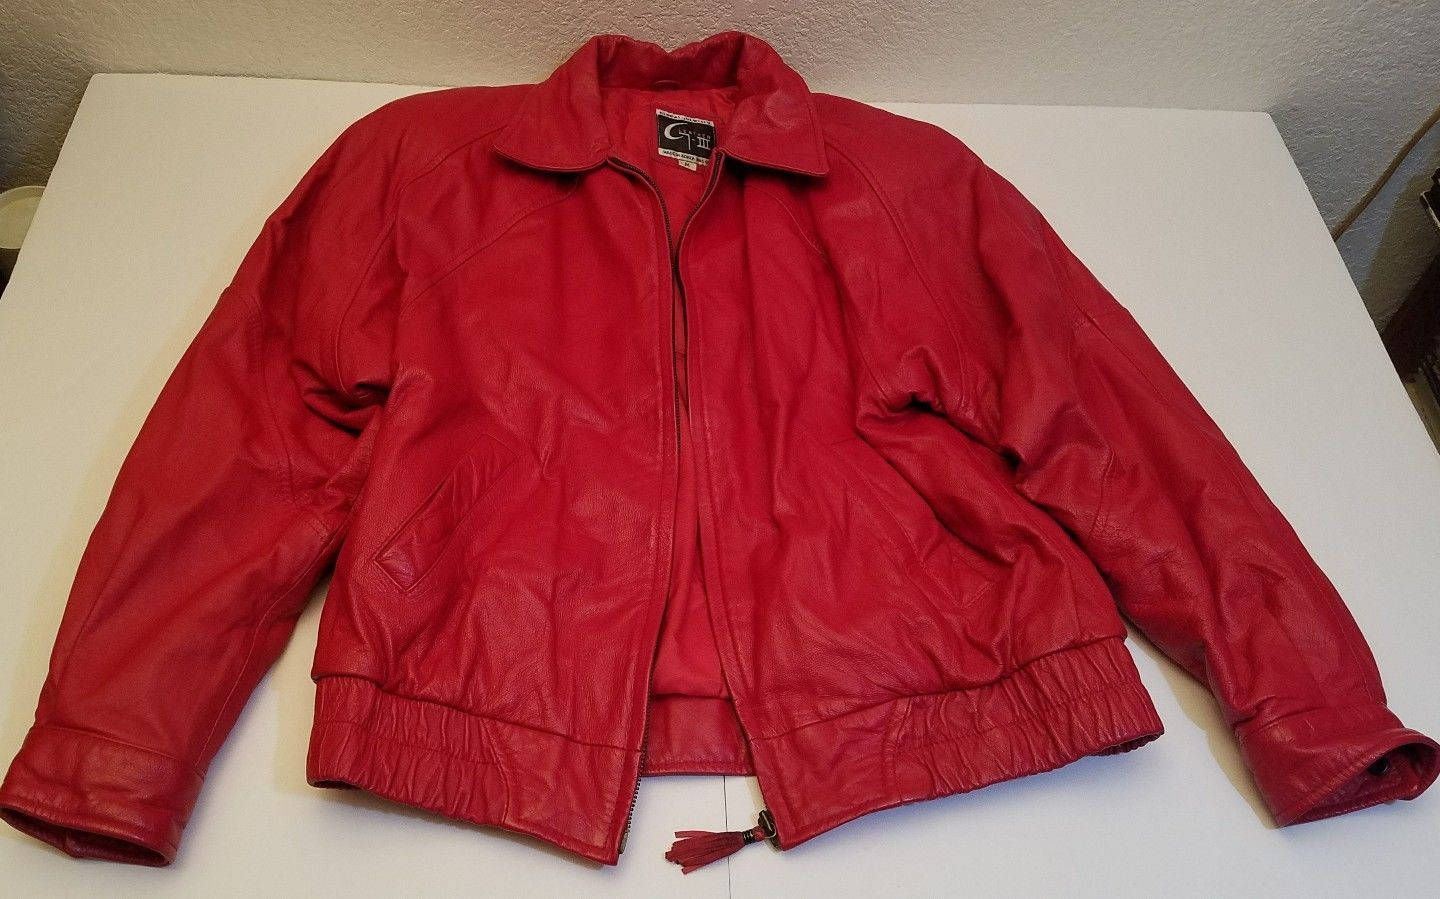 Retro Vintage Global Identity G-III Red Leather Coat Bomber Jacket Ladies  size M Cool